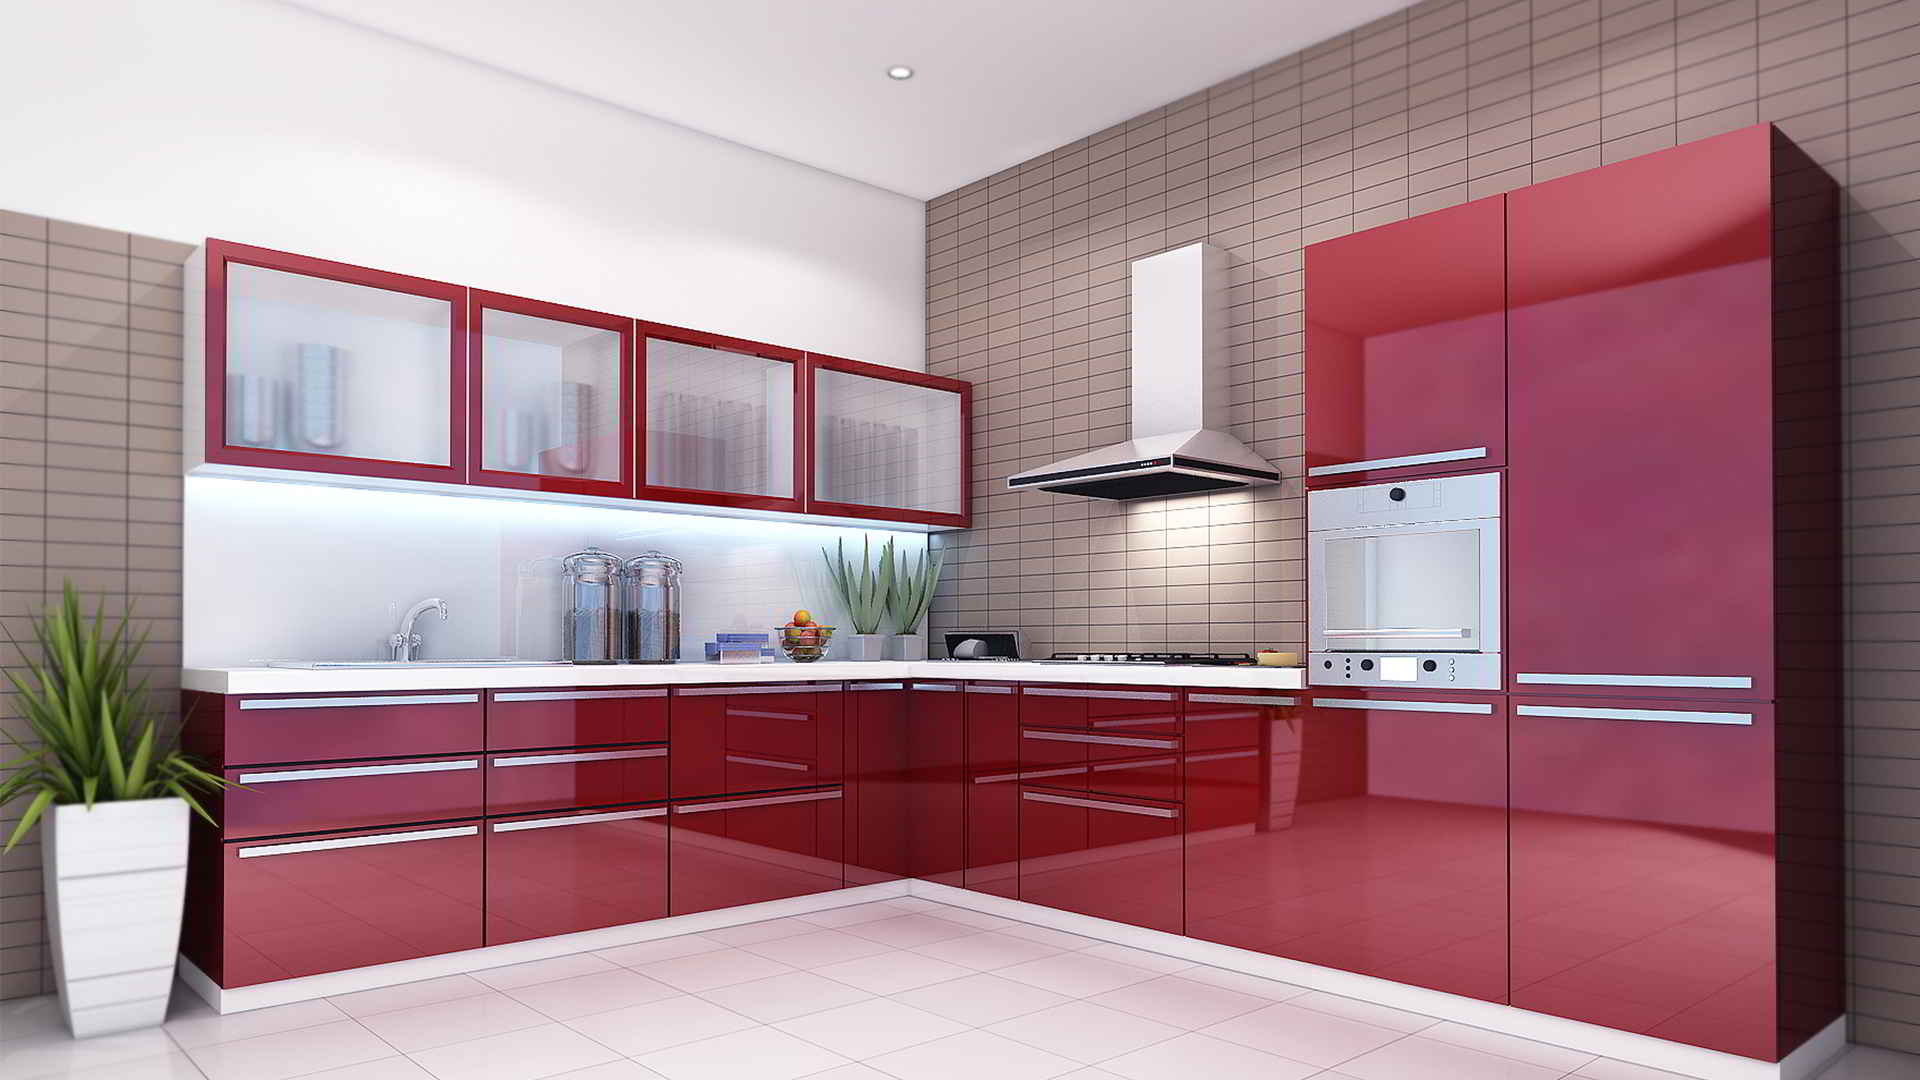 25 latest design ideas of modular kitchen pictures images catalogue Modular kitchen design and cost